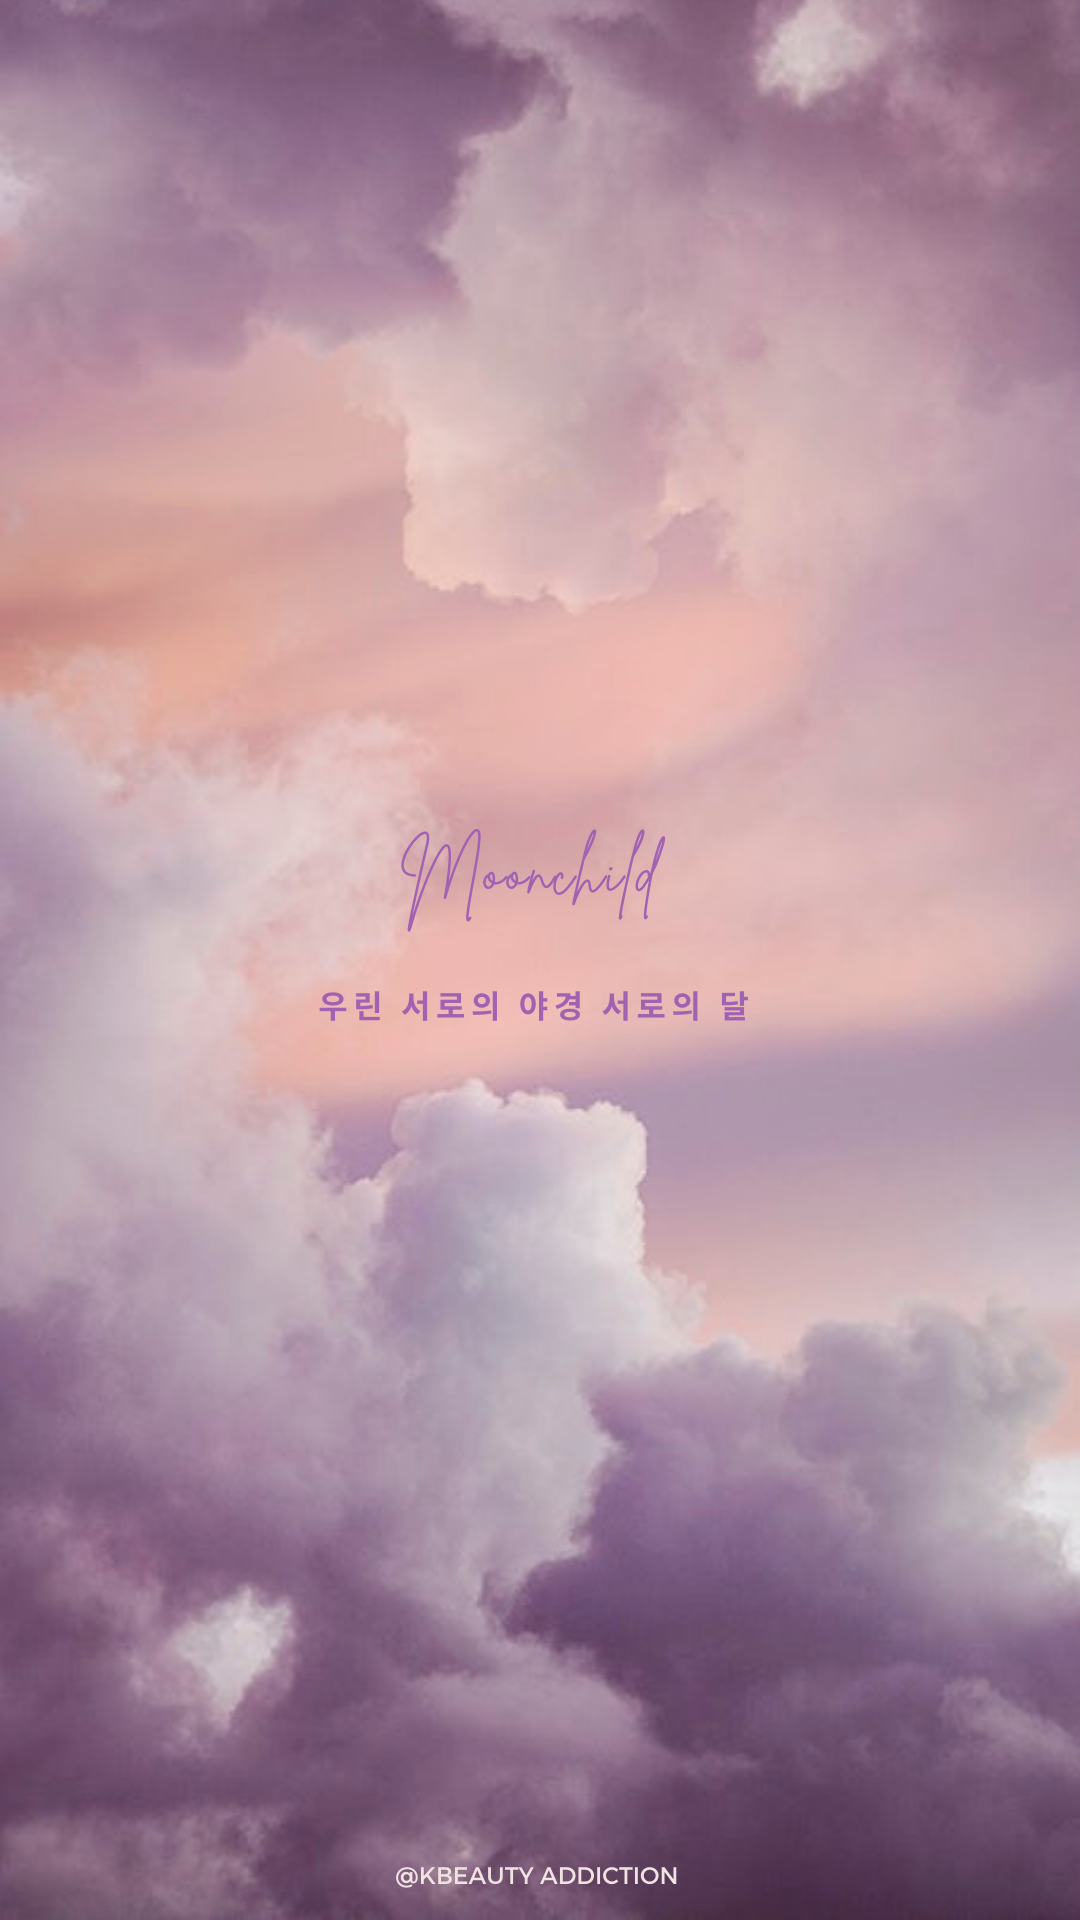 50+ BTS Lyrics Wallpaper Background Options for Your iPhone